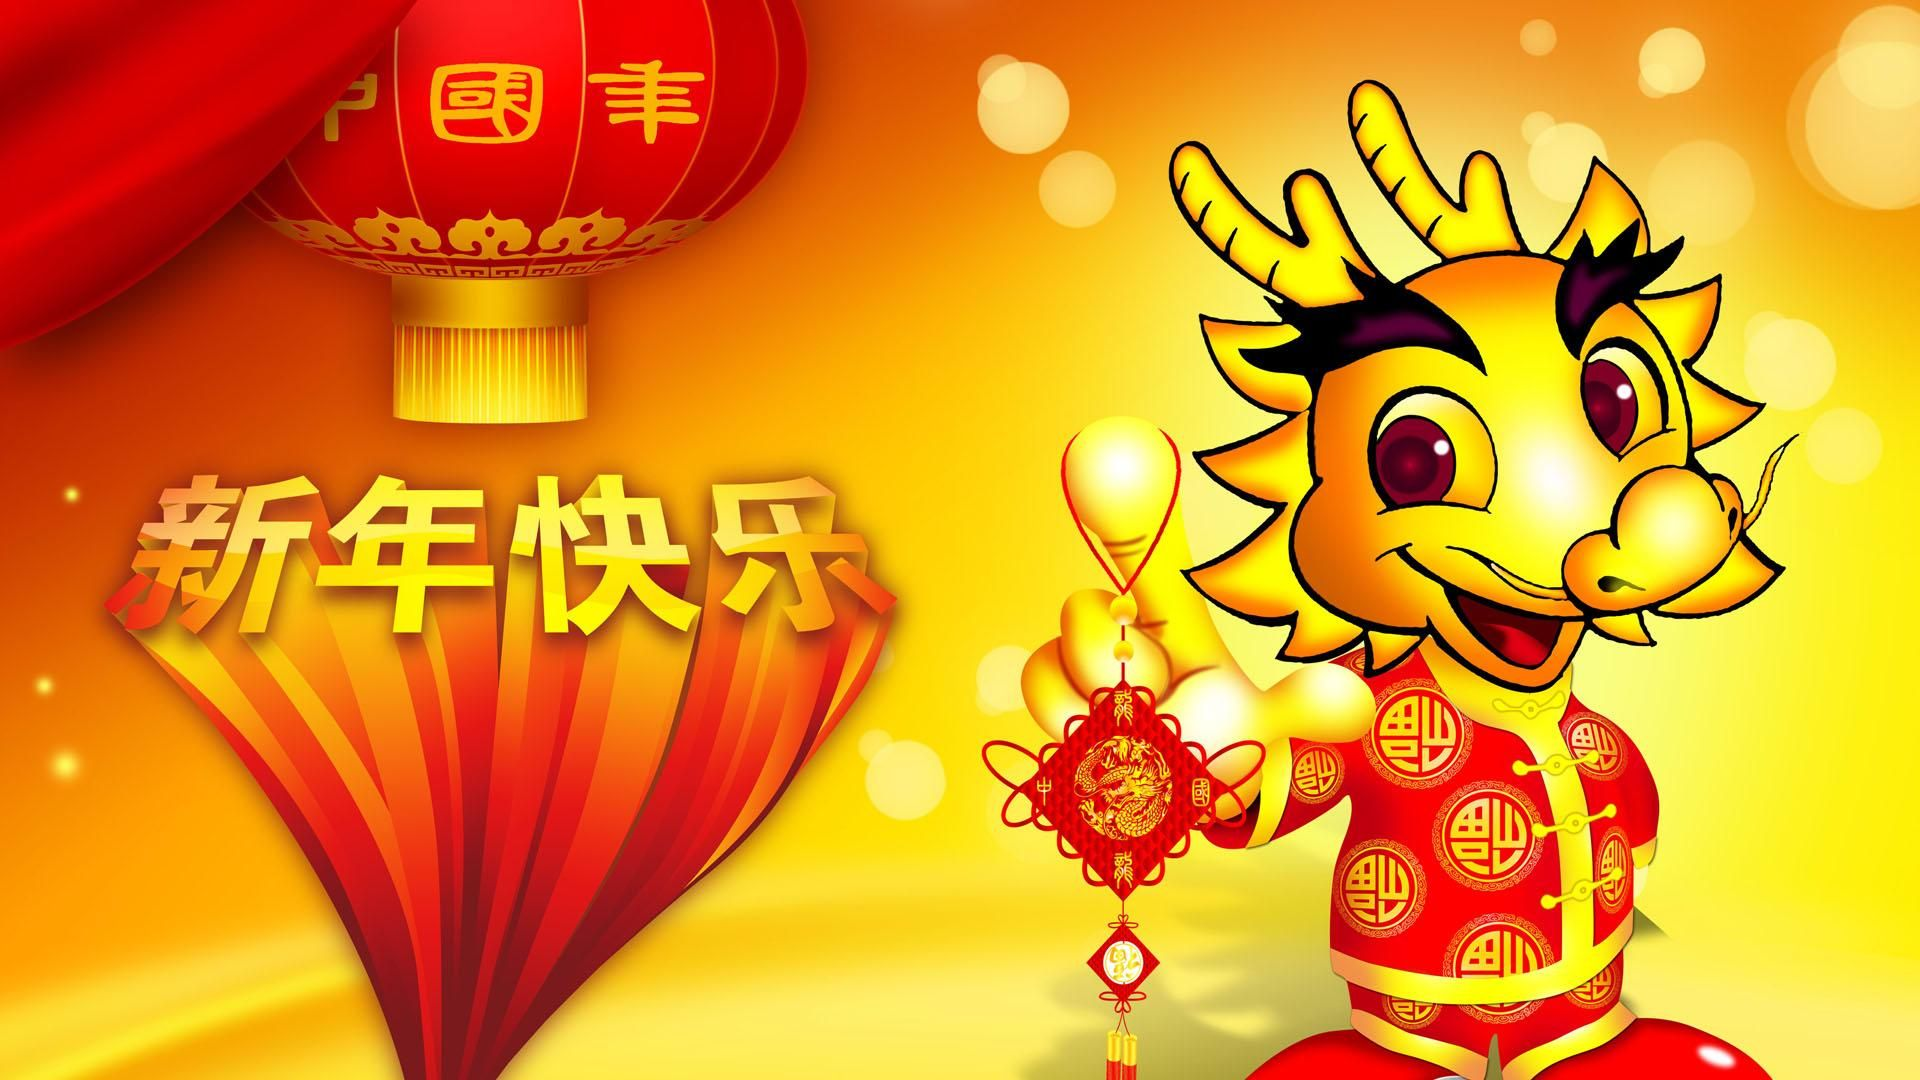 explore chinese love quotes holiday festival and more gong xi fa cai